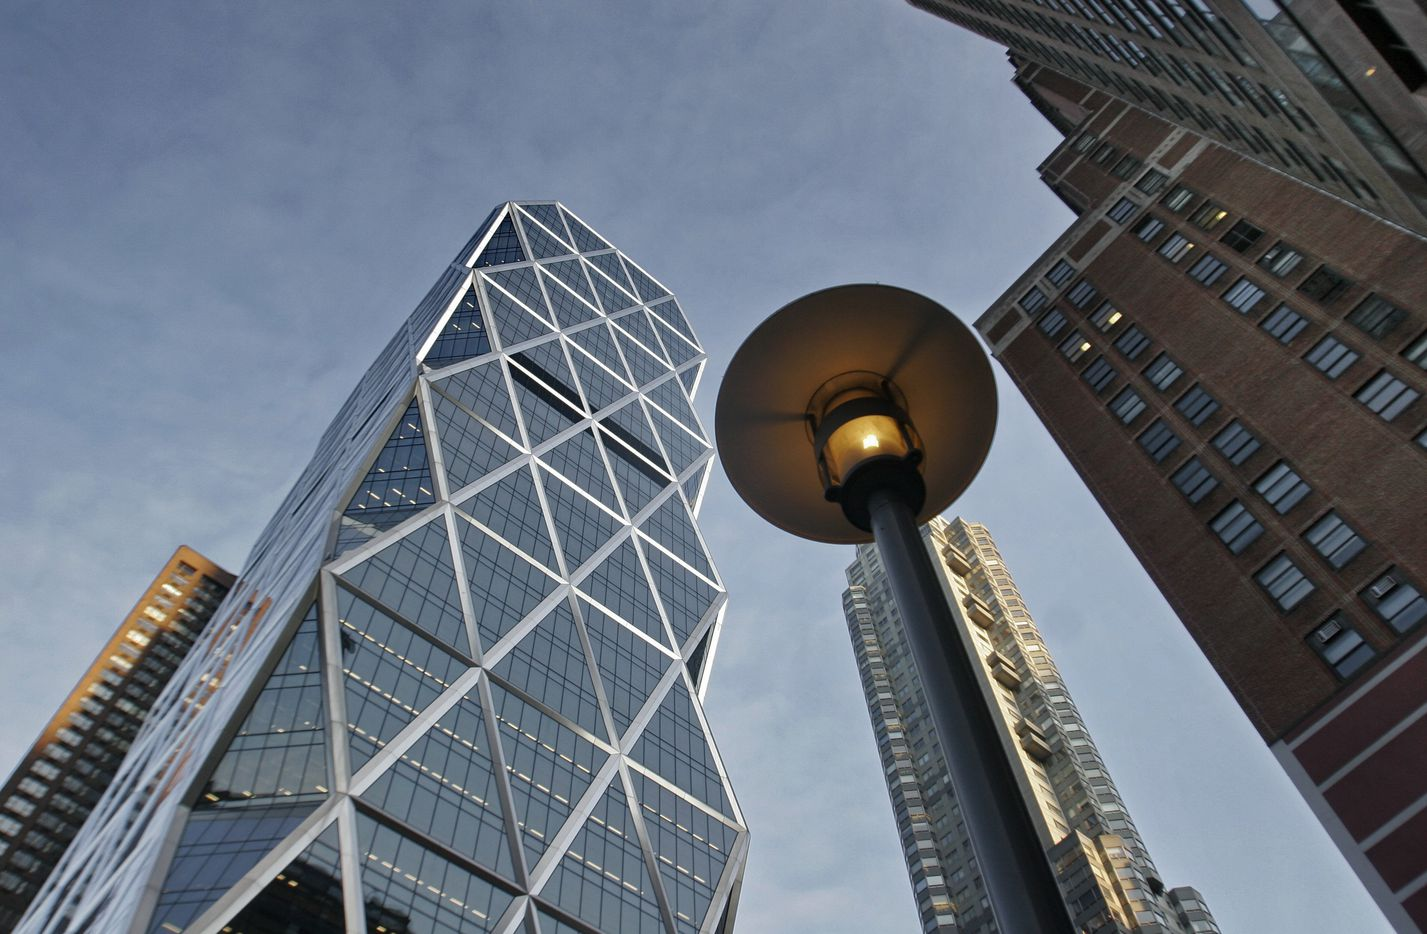 The Hearst Tower in Manhattan was designed by Sir Norman Foster.